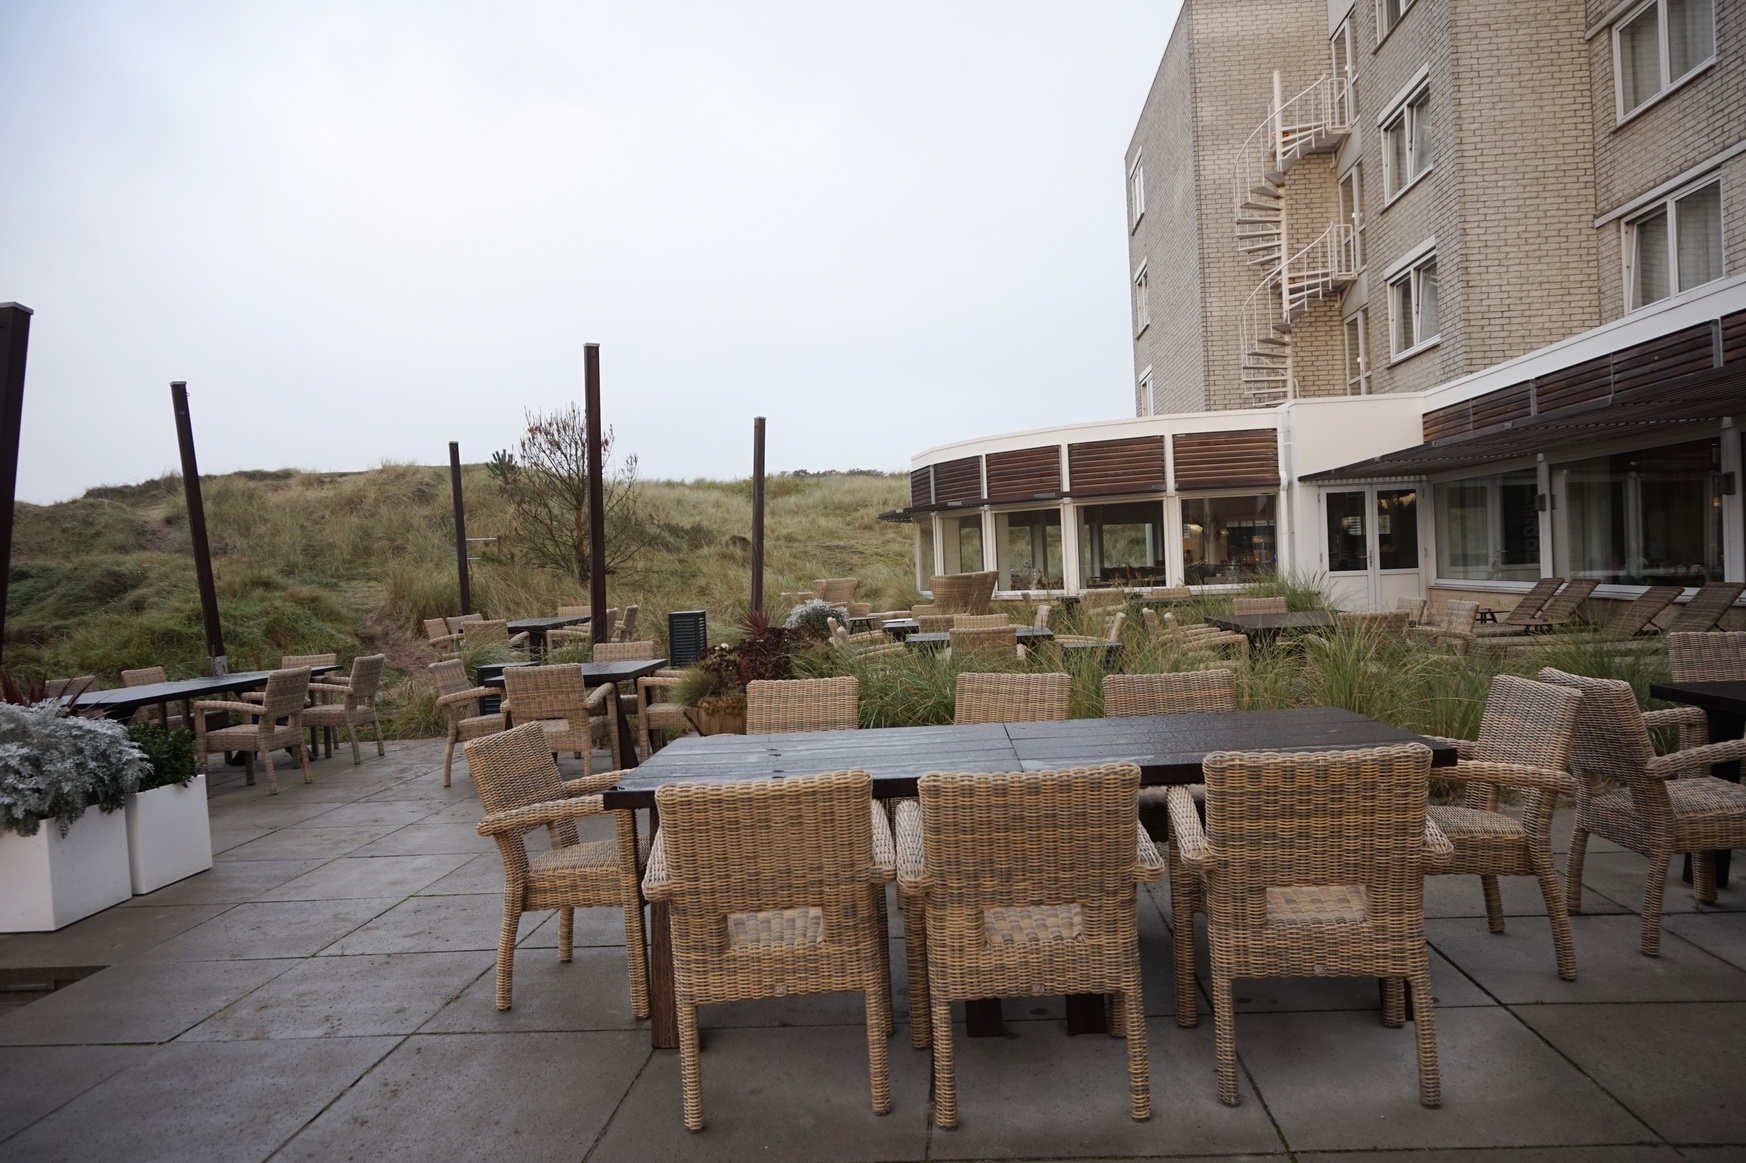 Texel Grand Hotel Opduin 2